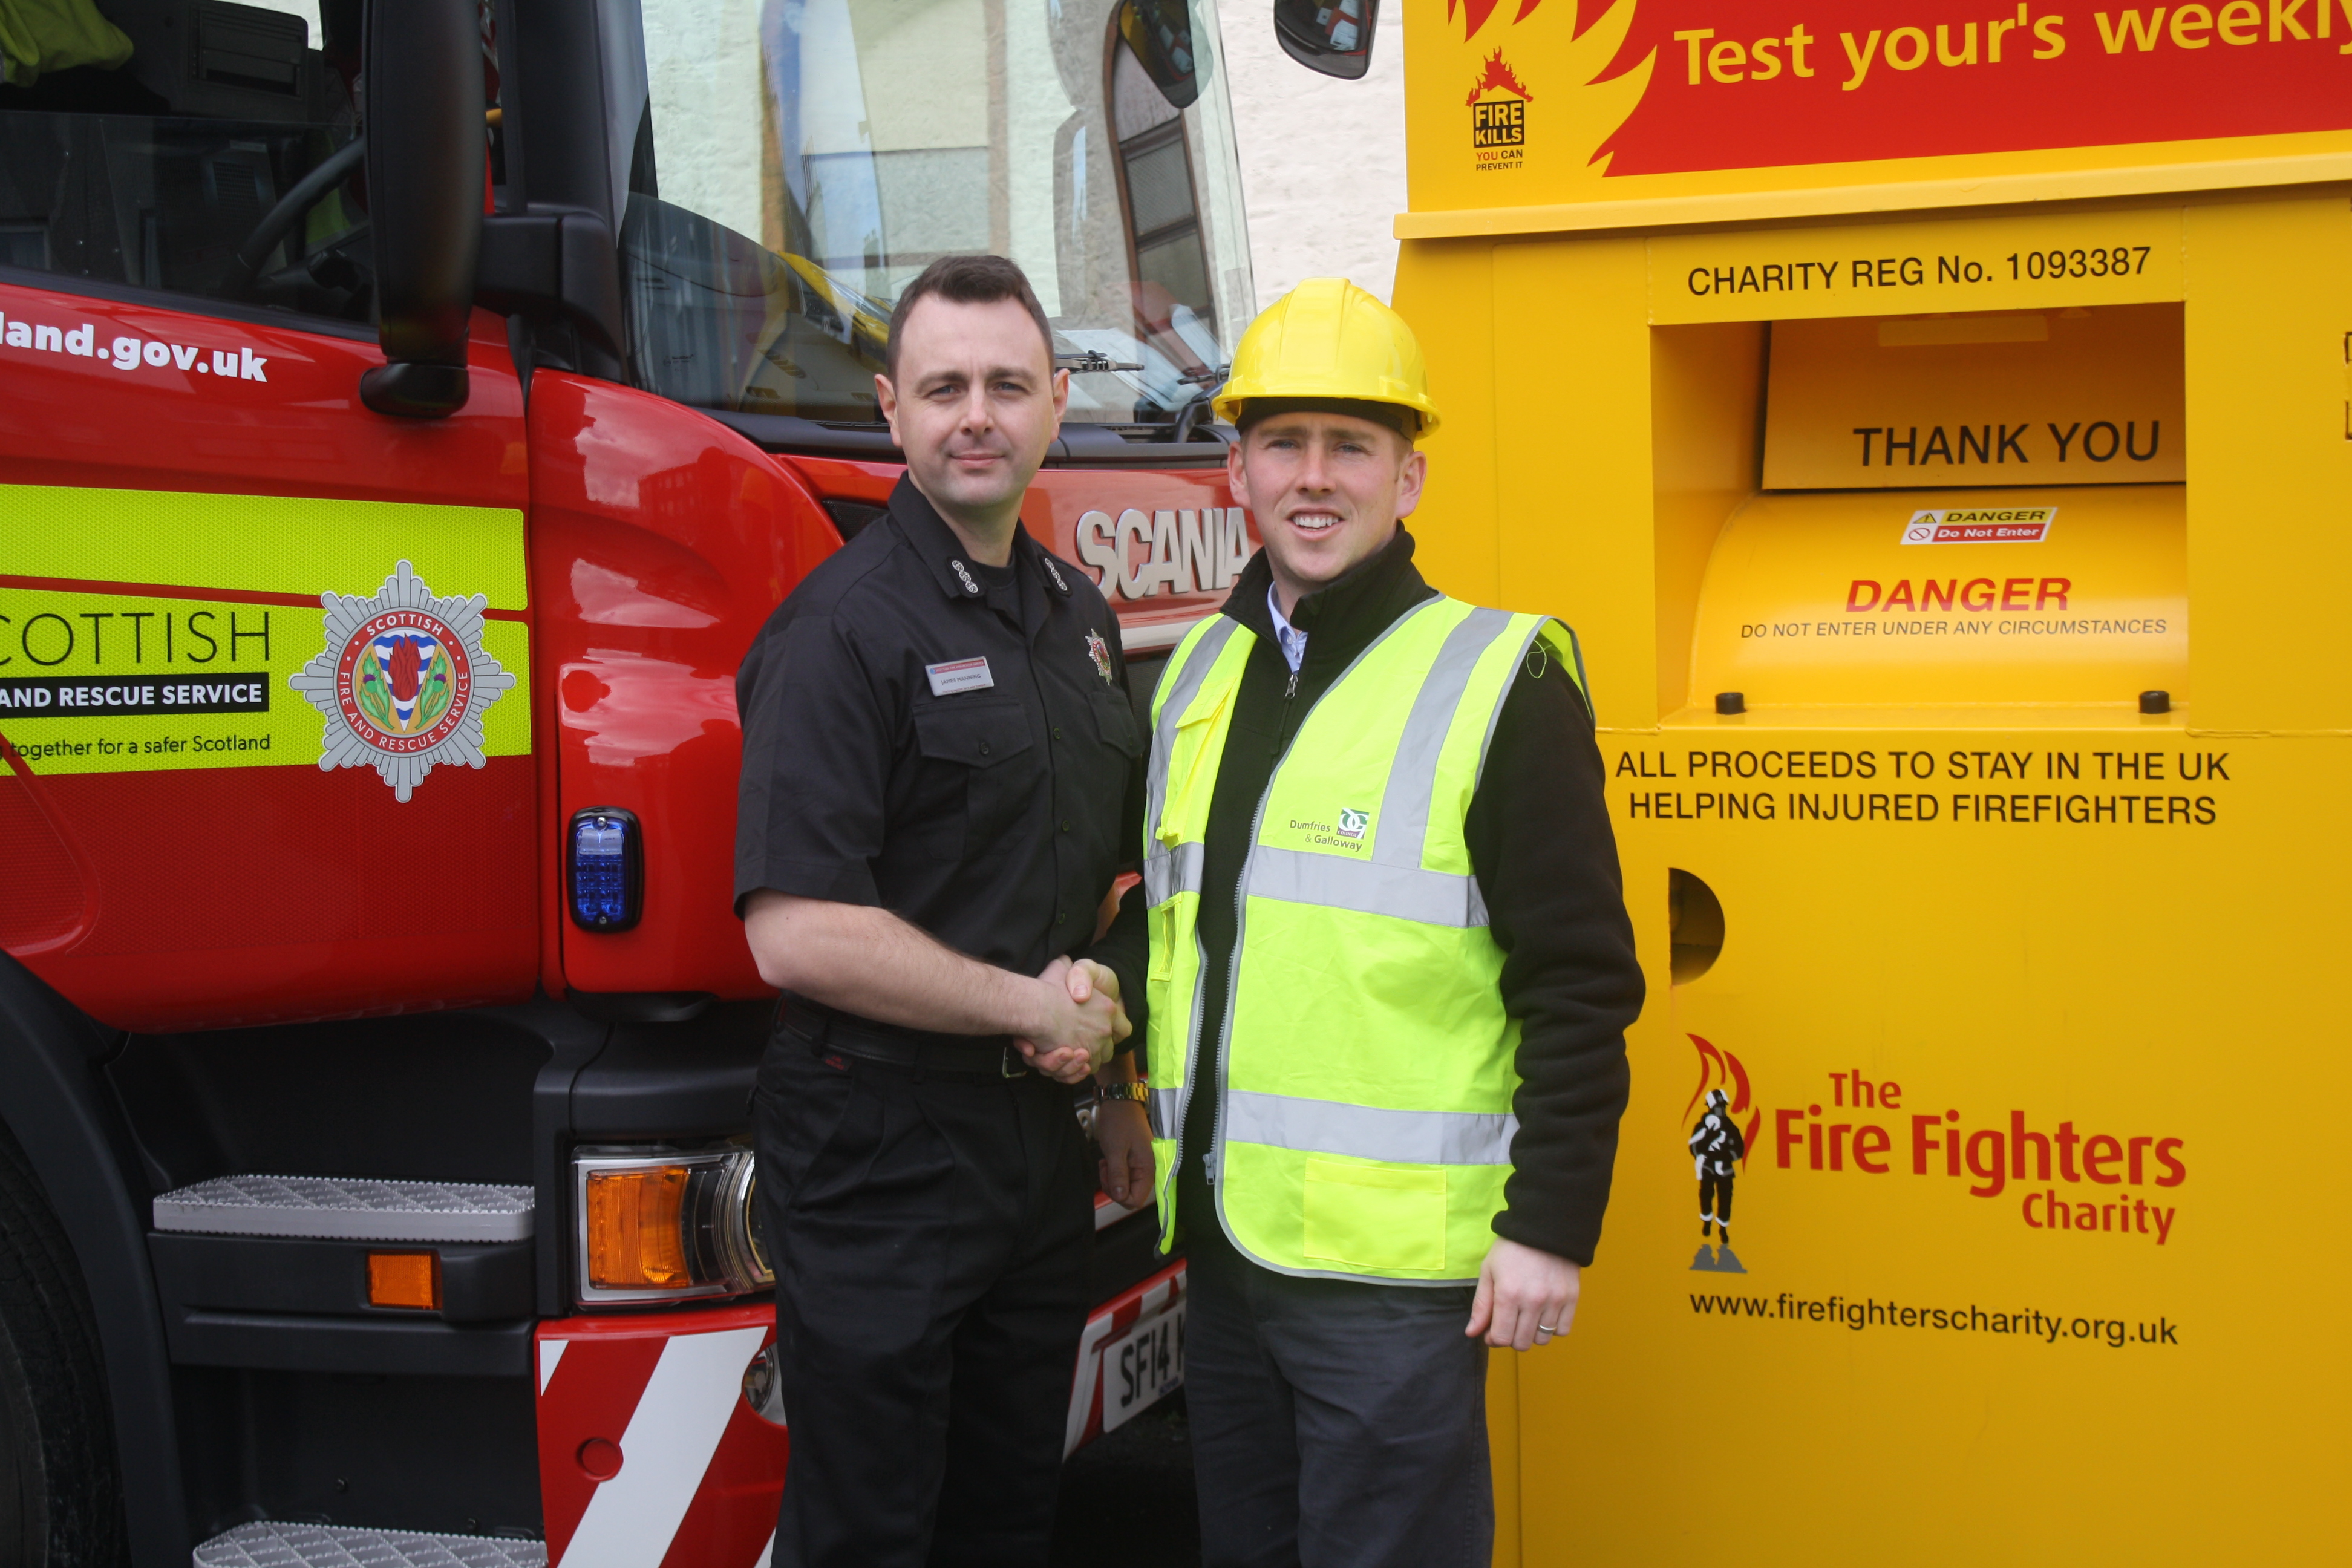 Stranraer leads the way in recycling